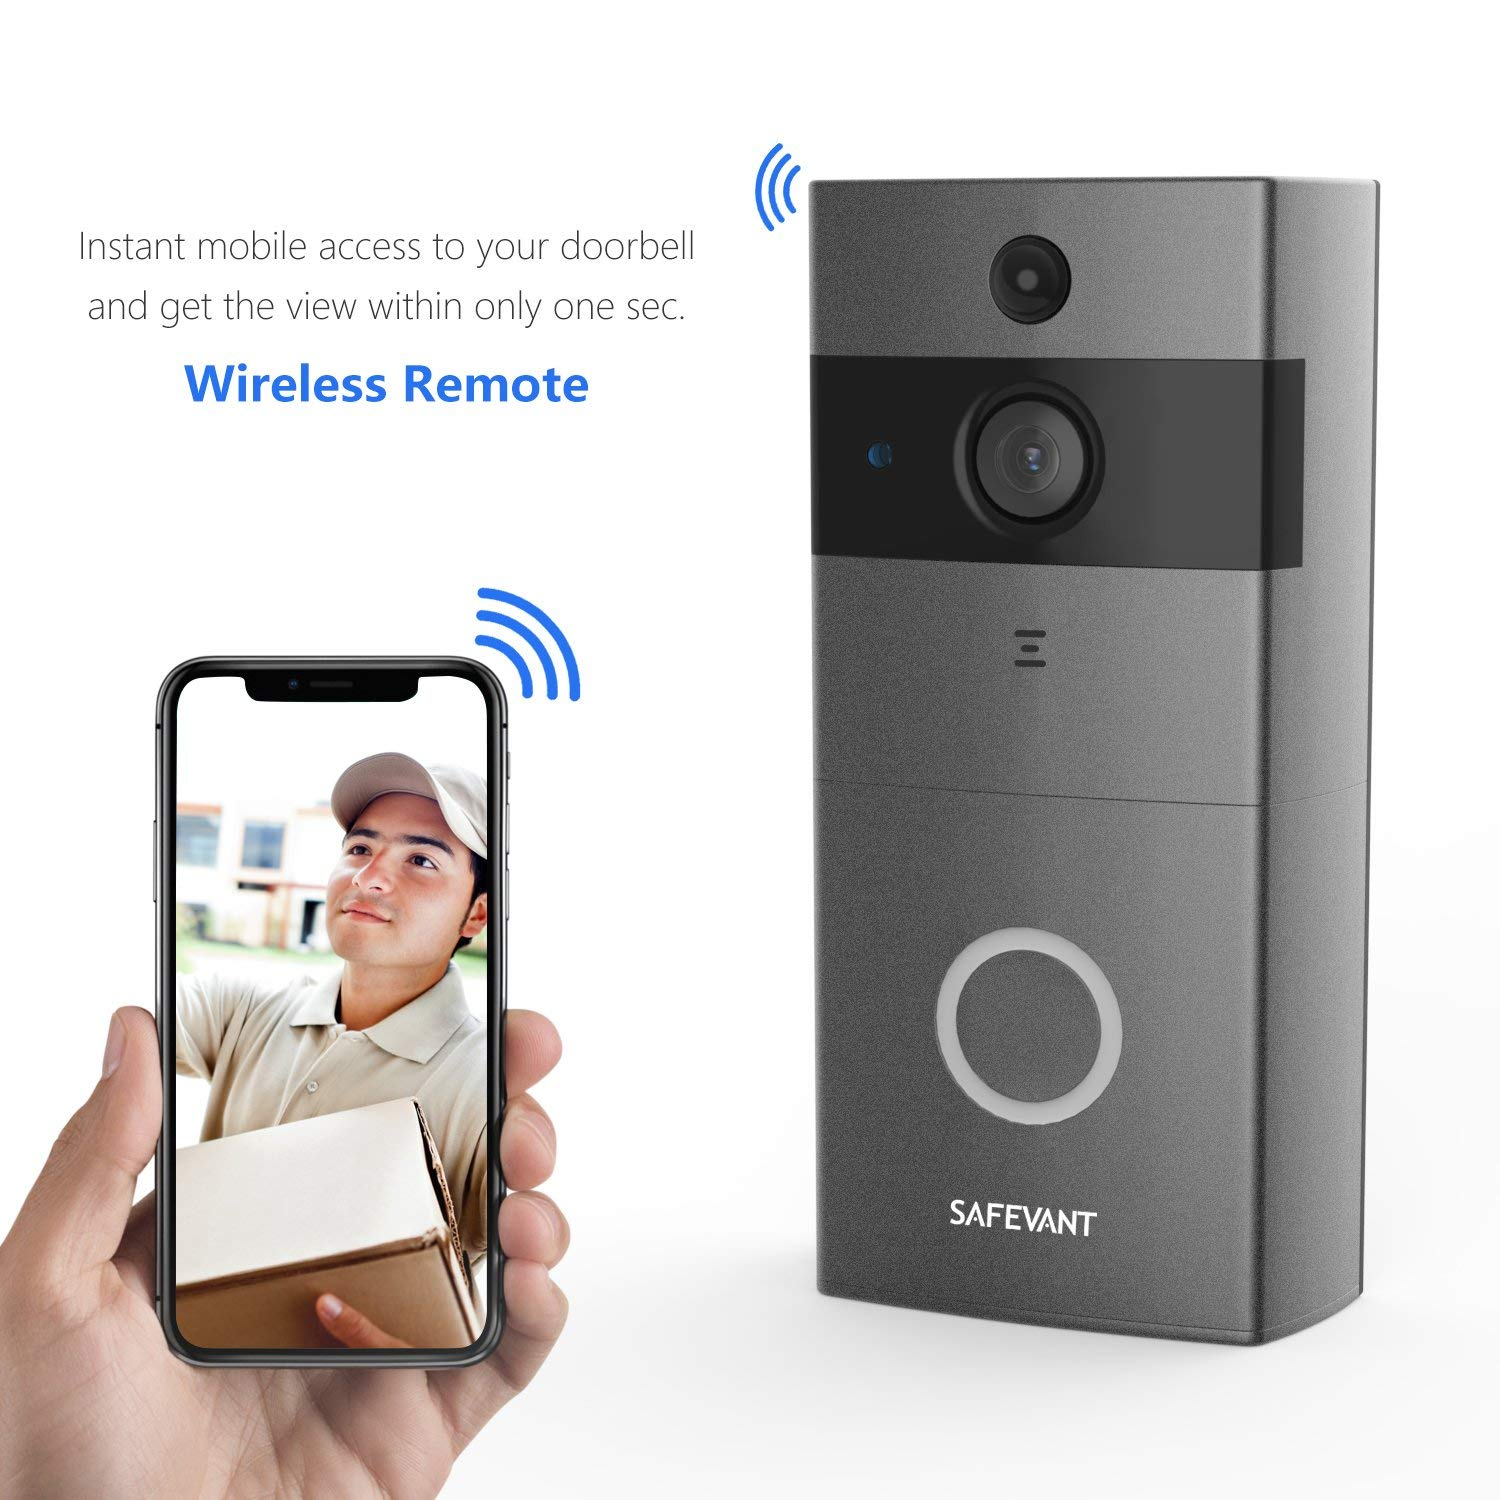 Cheap Motion Doorbell, find Motion Doorbell deals on line at ... on home safe, home bathroom, home computer, home mailbox, home pain, home security, home lock, home flooring, home tree, home chimney, home fire, home stove, home kitchen, home toilet, home shower, home lights, home ladder, home driveway, home refrigerator,